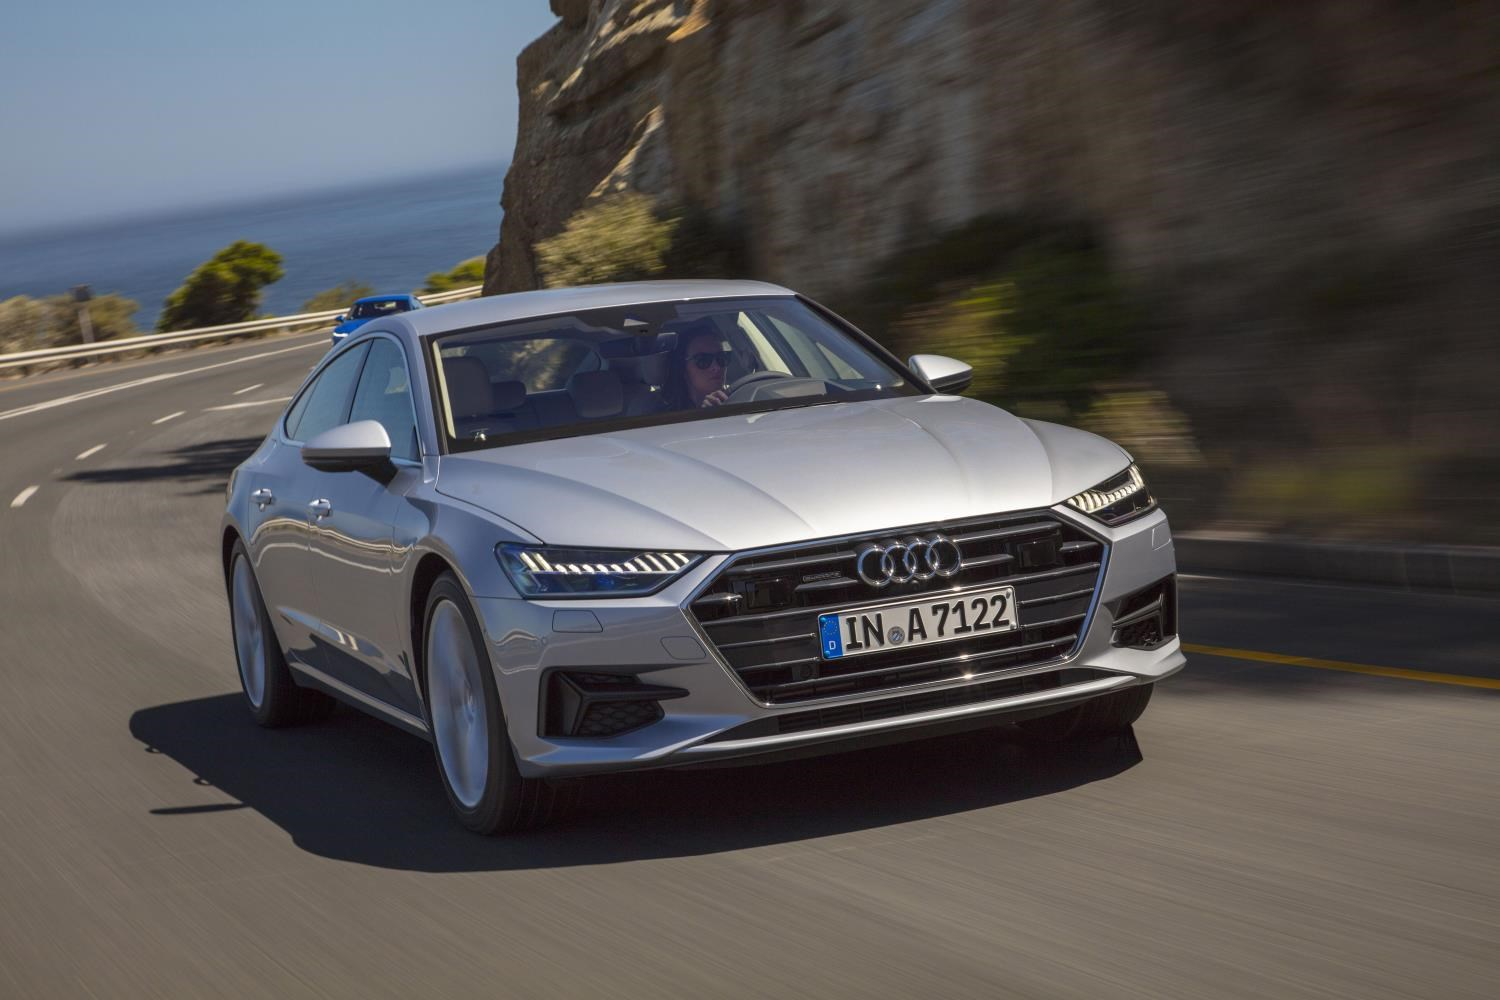 New Audi A7 Sportback Prices Specs And Co2 Emissions Automobile S7 Advertisement Has Revealed The For Its